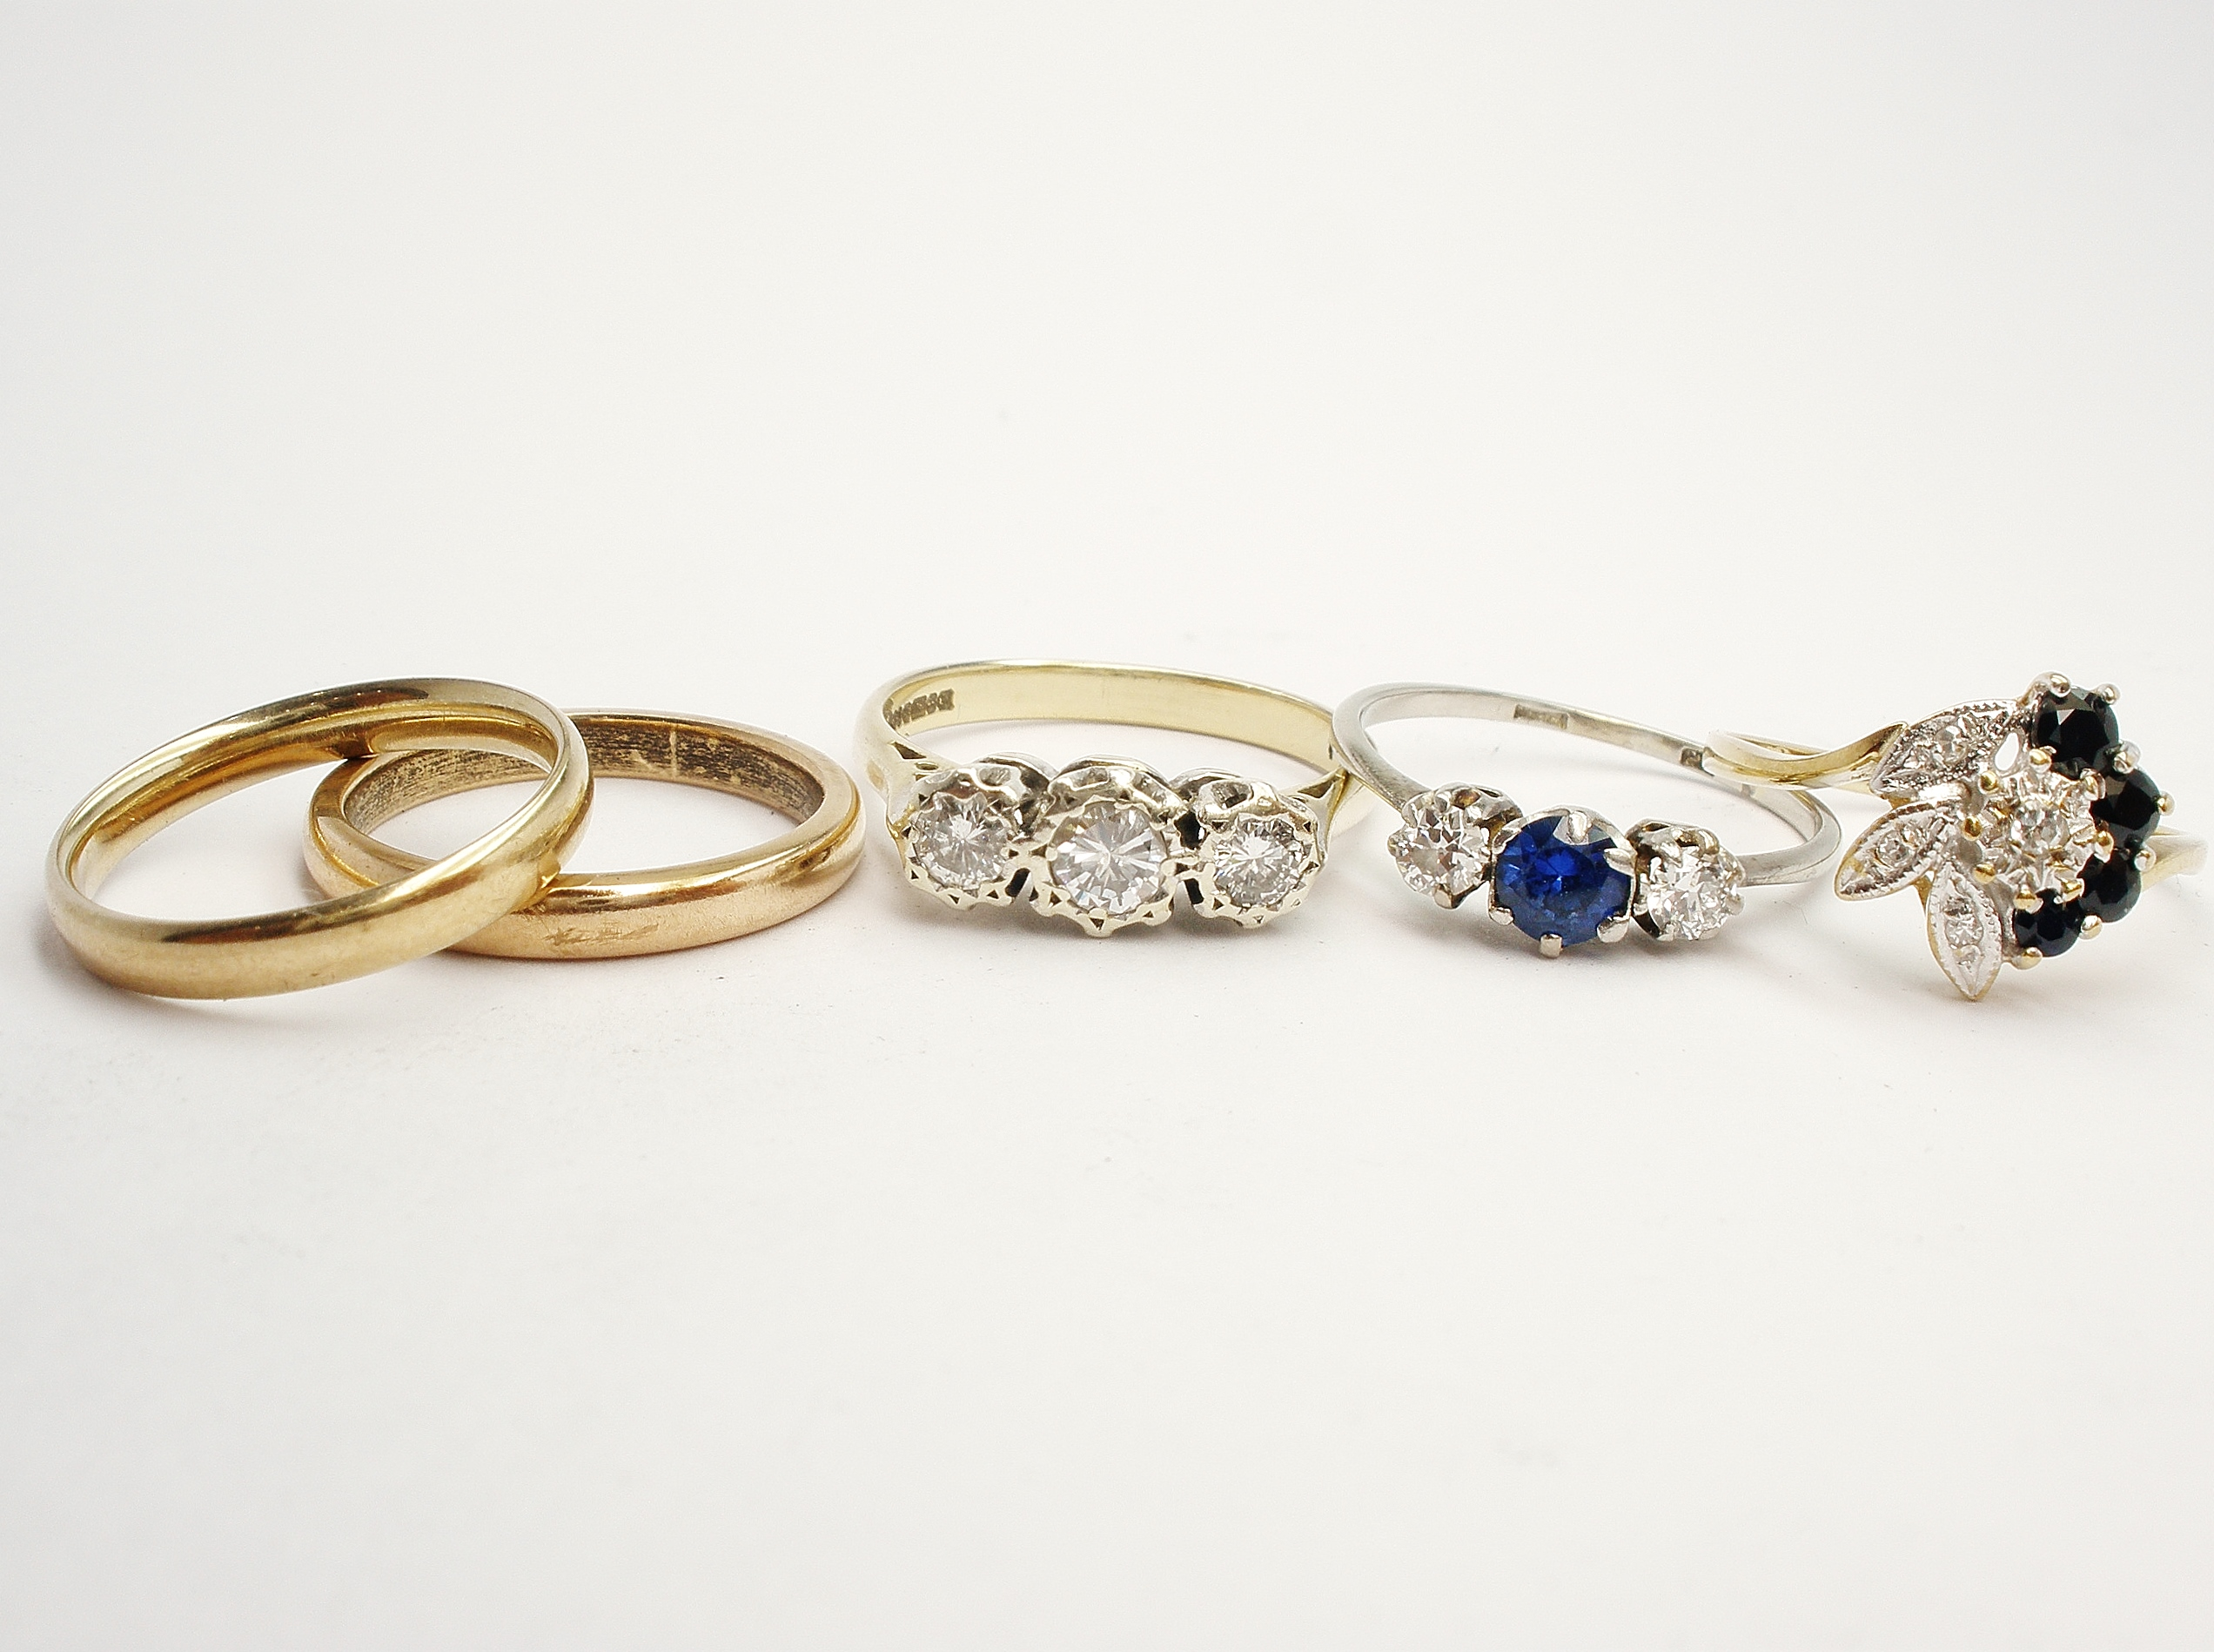 Items supplied. Clients mother's 3 stone diamond engagement ring & 3 stone sapphire and diamond ring, both her grandmothers' wedding rings, and her own diamond dress ring.